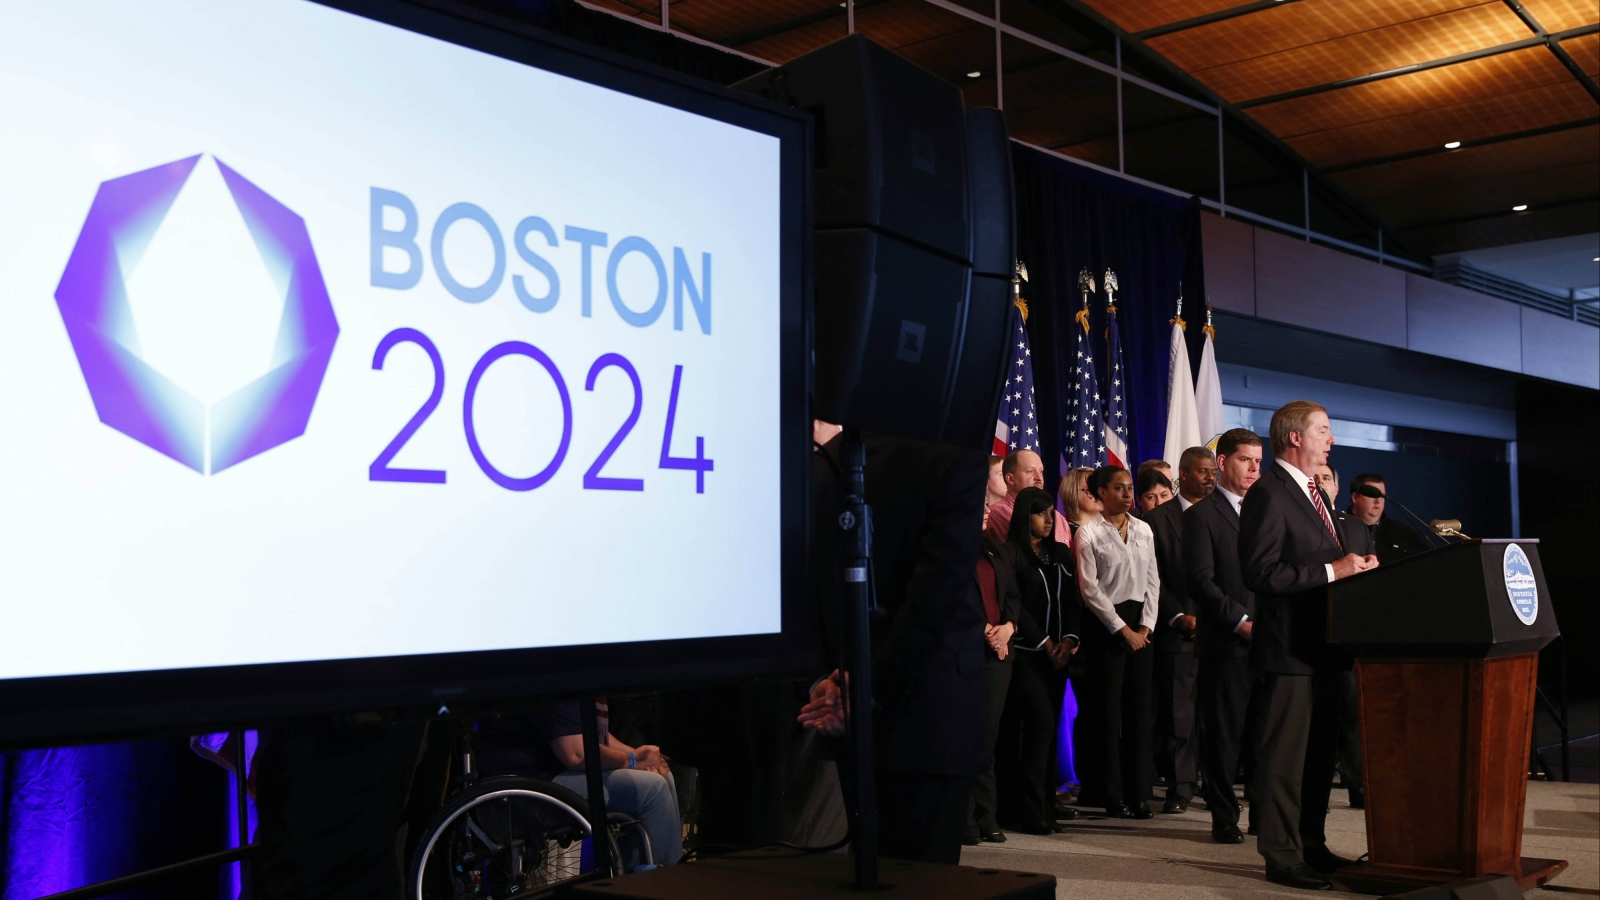 United States Olympic Committee president Lawrence F. Probst III , flanked by Boston mayor Martin J. Walsh (left) , talks about the USOC selecting Boston as its applicant city to host the 2024 Olympic and Paralympic Games during a press conference at the Boston Convention Center and Exhibition Center.